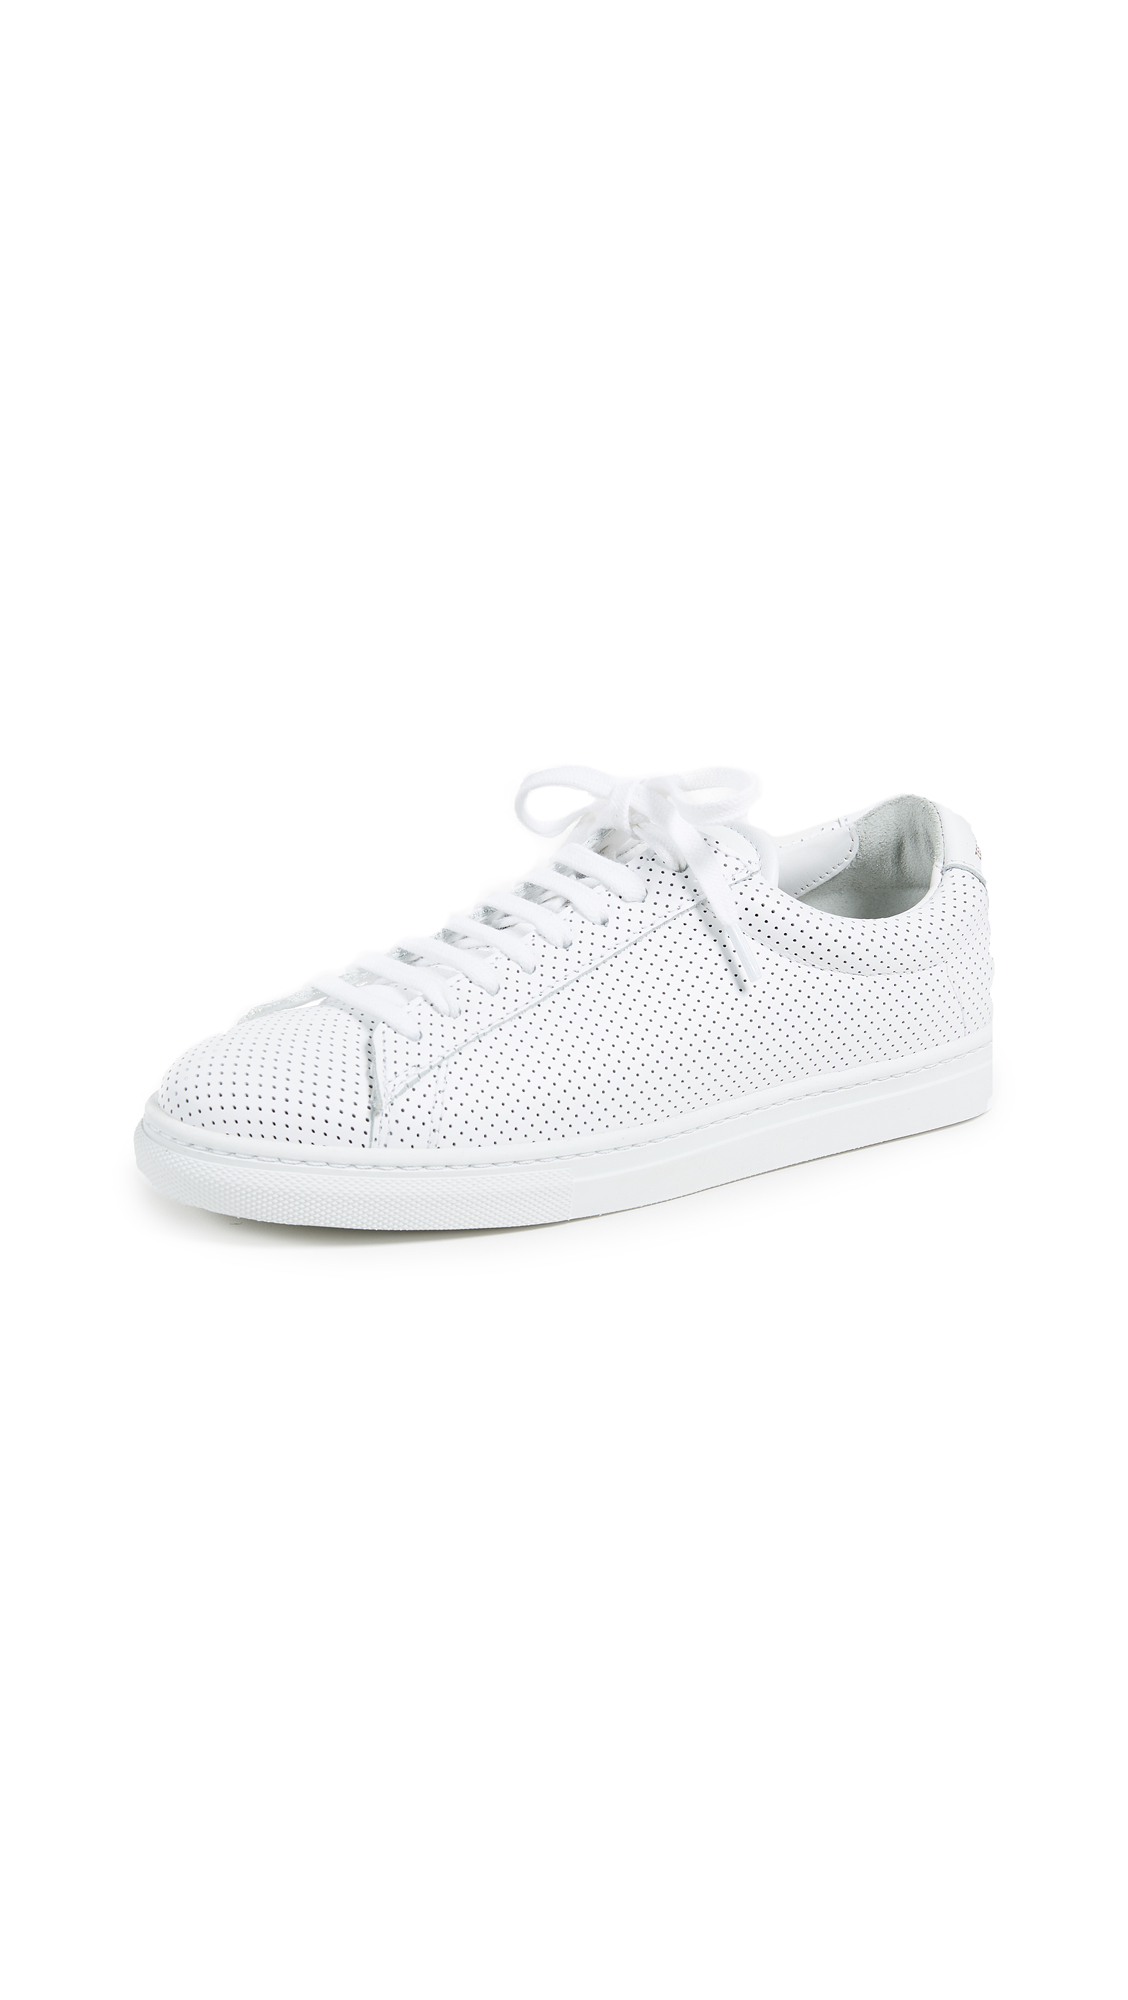 Zespa Perforated Laceup Sneakers - White